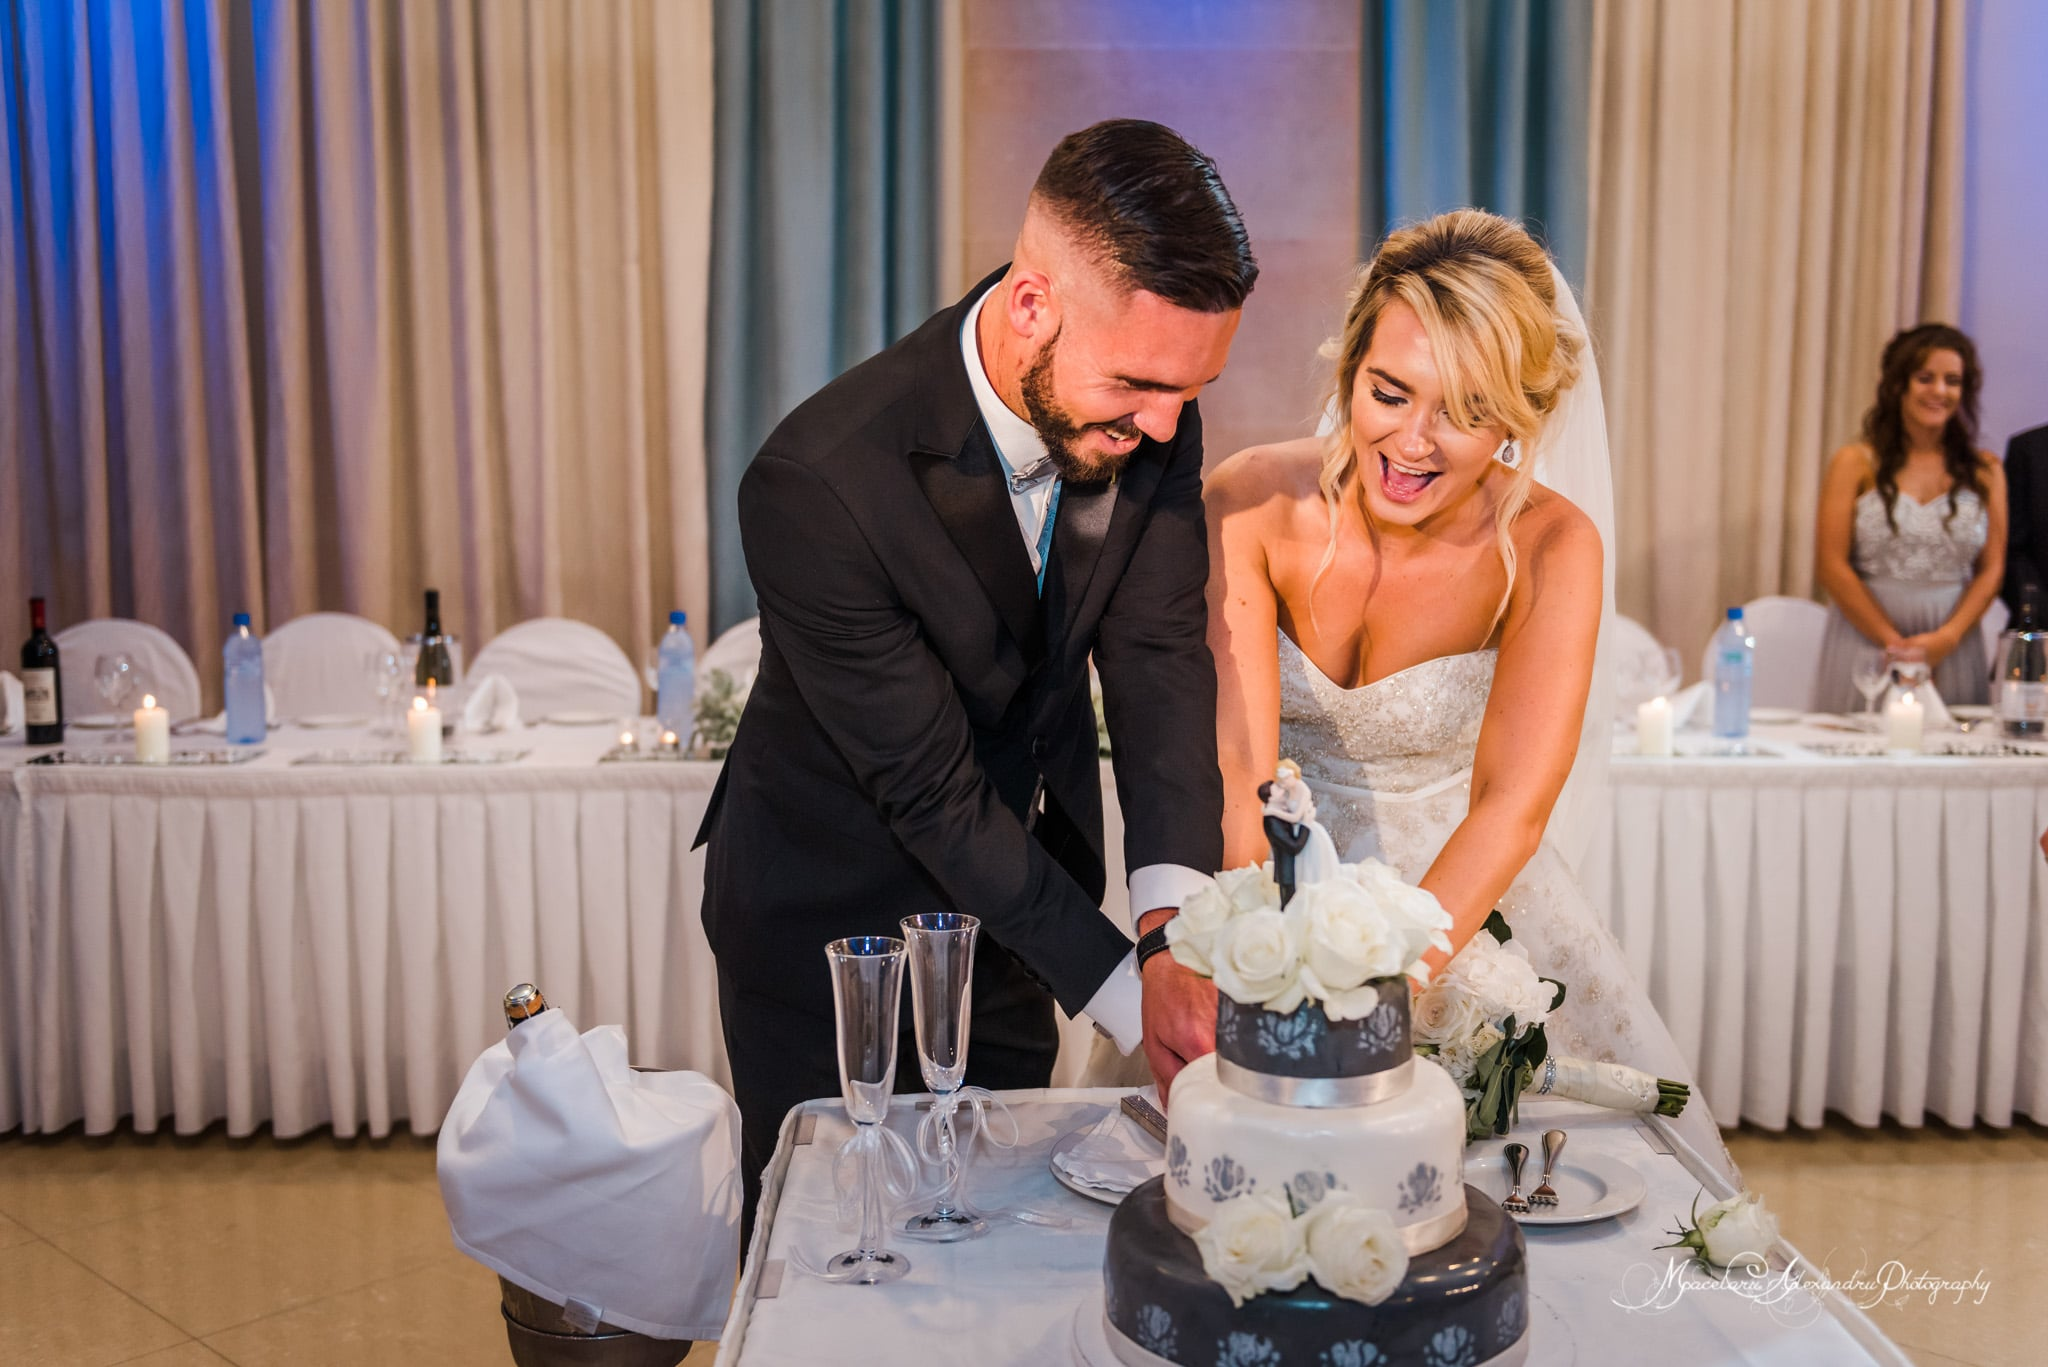 Wedding photography in Paphos - Bride and Groom are cutting the cake